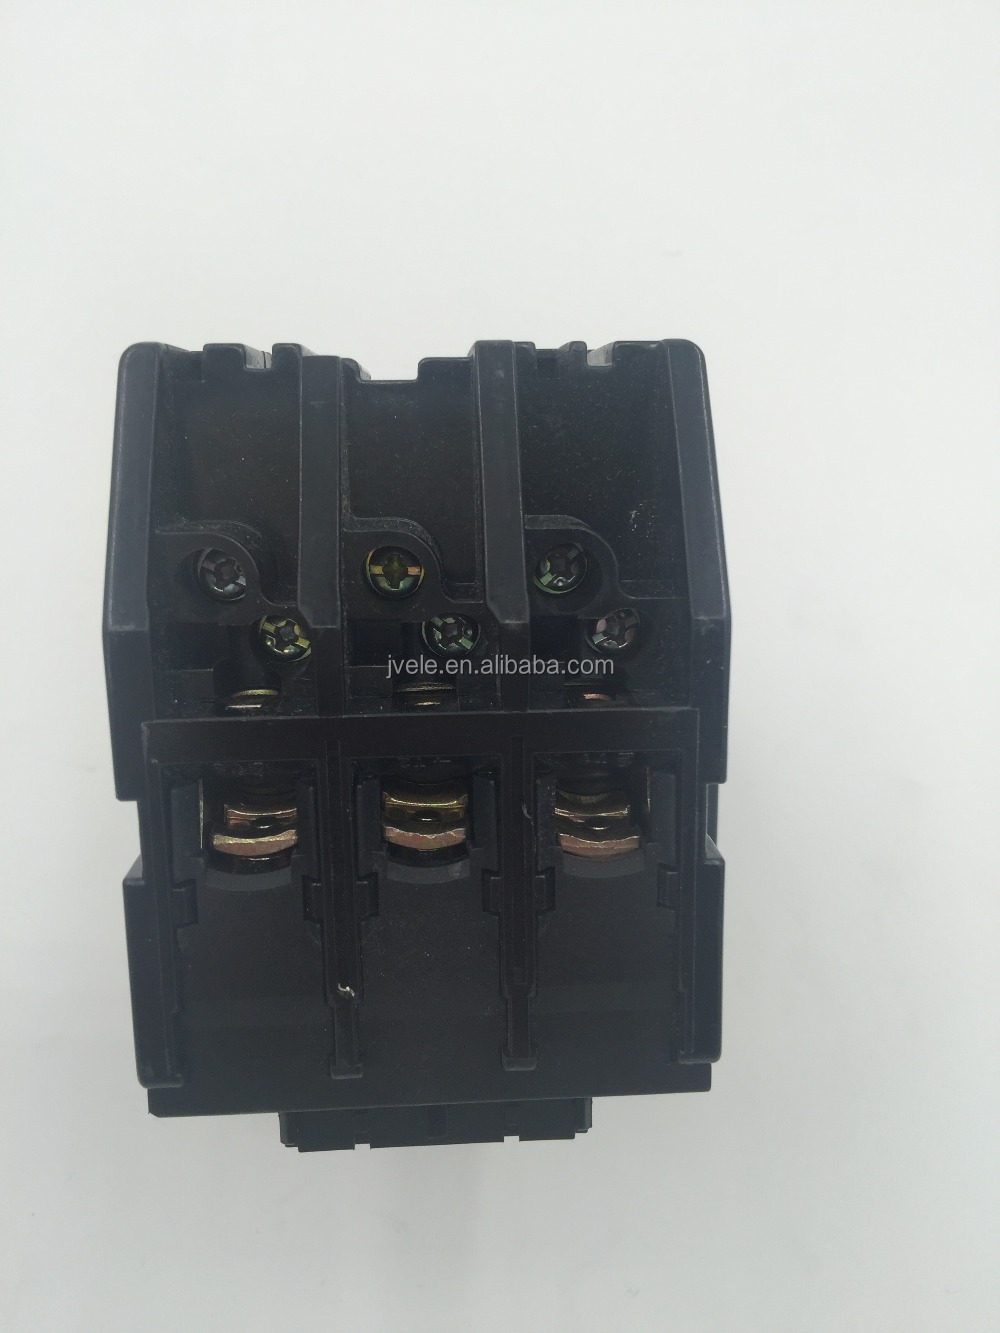 China Supplier For JR28N New LR2-D LRD Series Thermal Overload Relay LRD-13 LRD-33 LRD-43